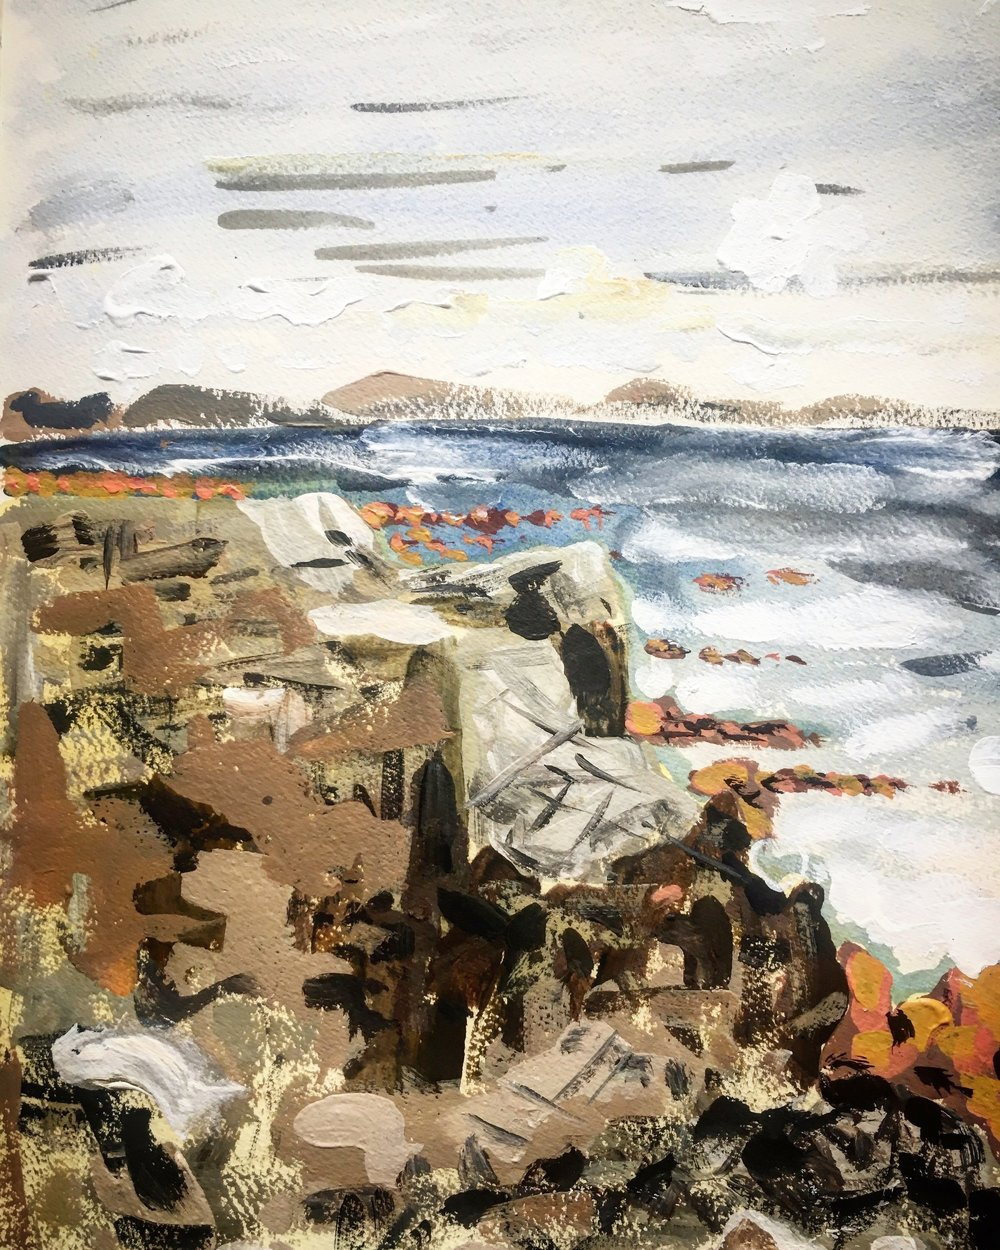 Rocks, Sea and wind, Rossadillisk Co. Galway, acrylic on paper 42x30cm August 2018 (sold)